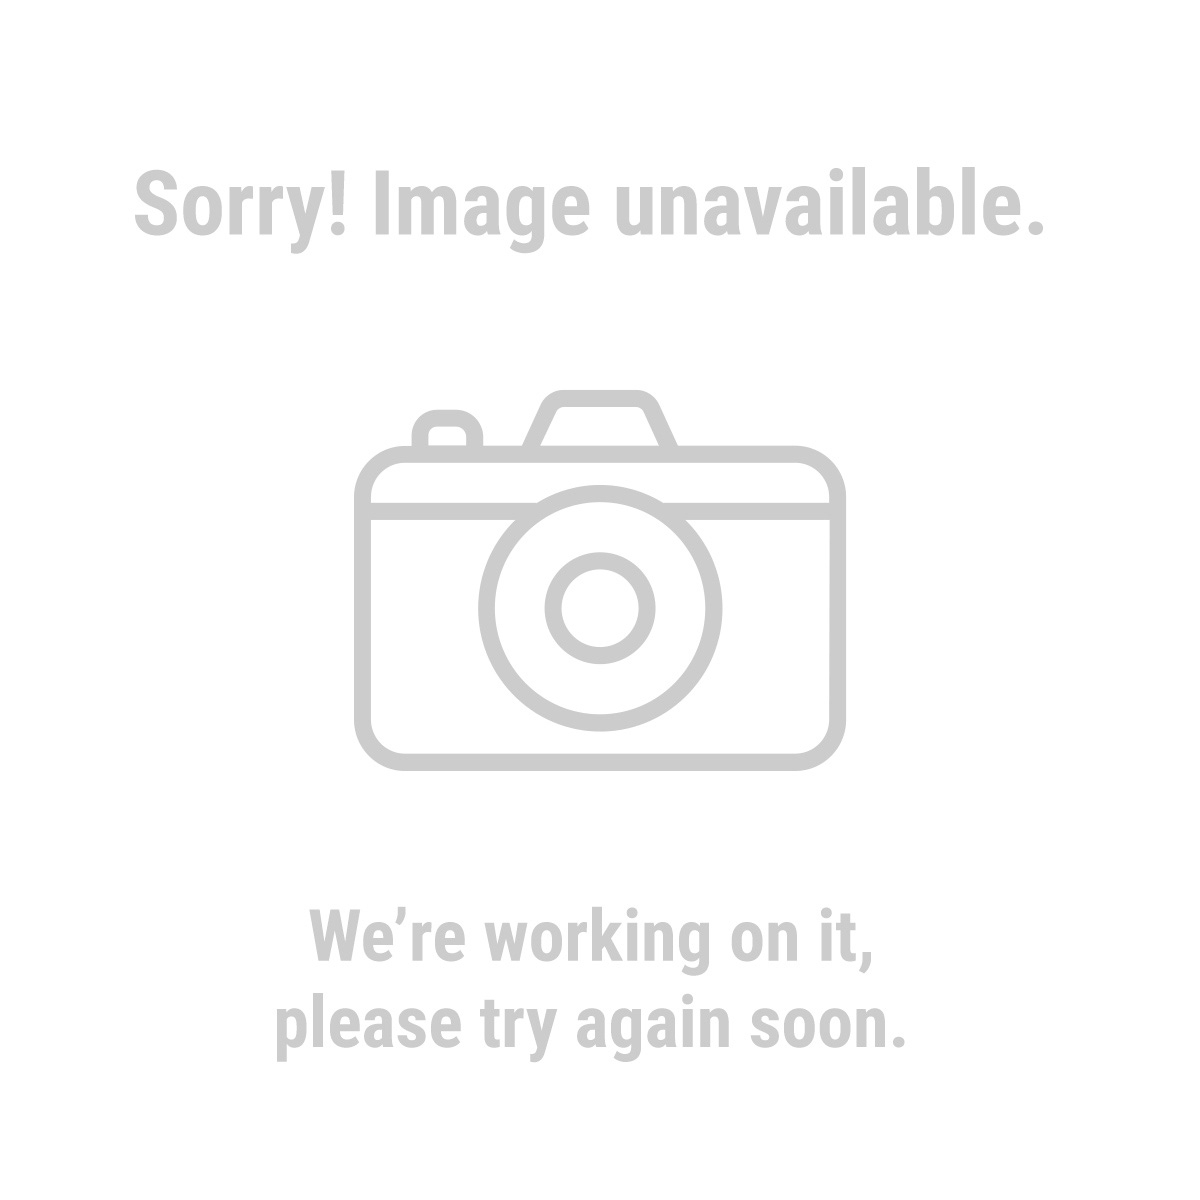 "Haul-Master 90769 100 Ft. x 3/16"" Polypropylene Rope"